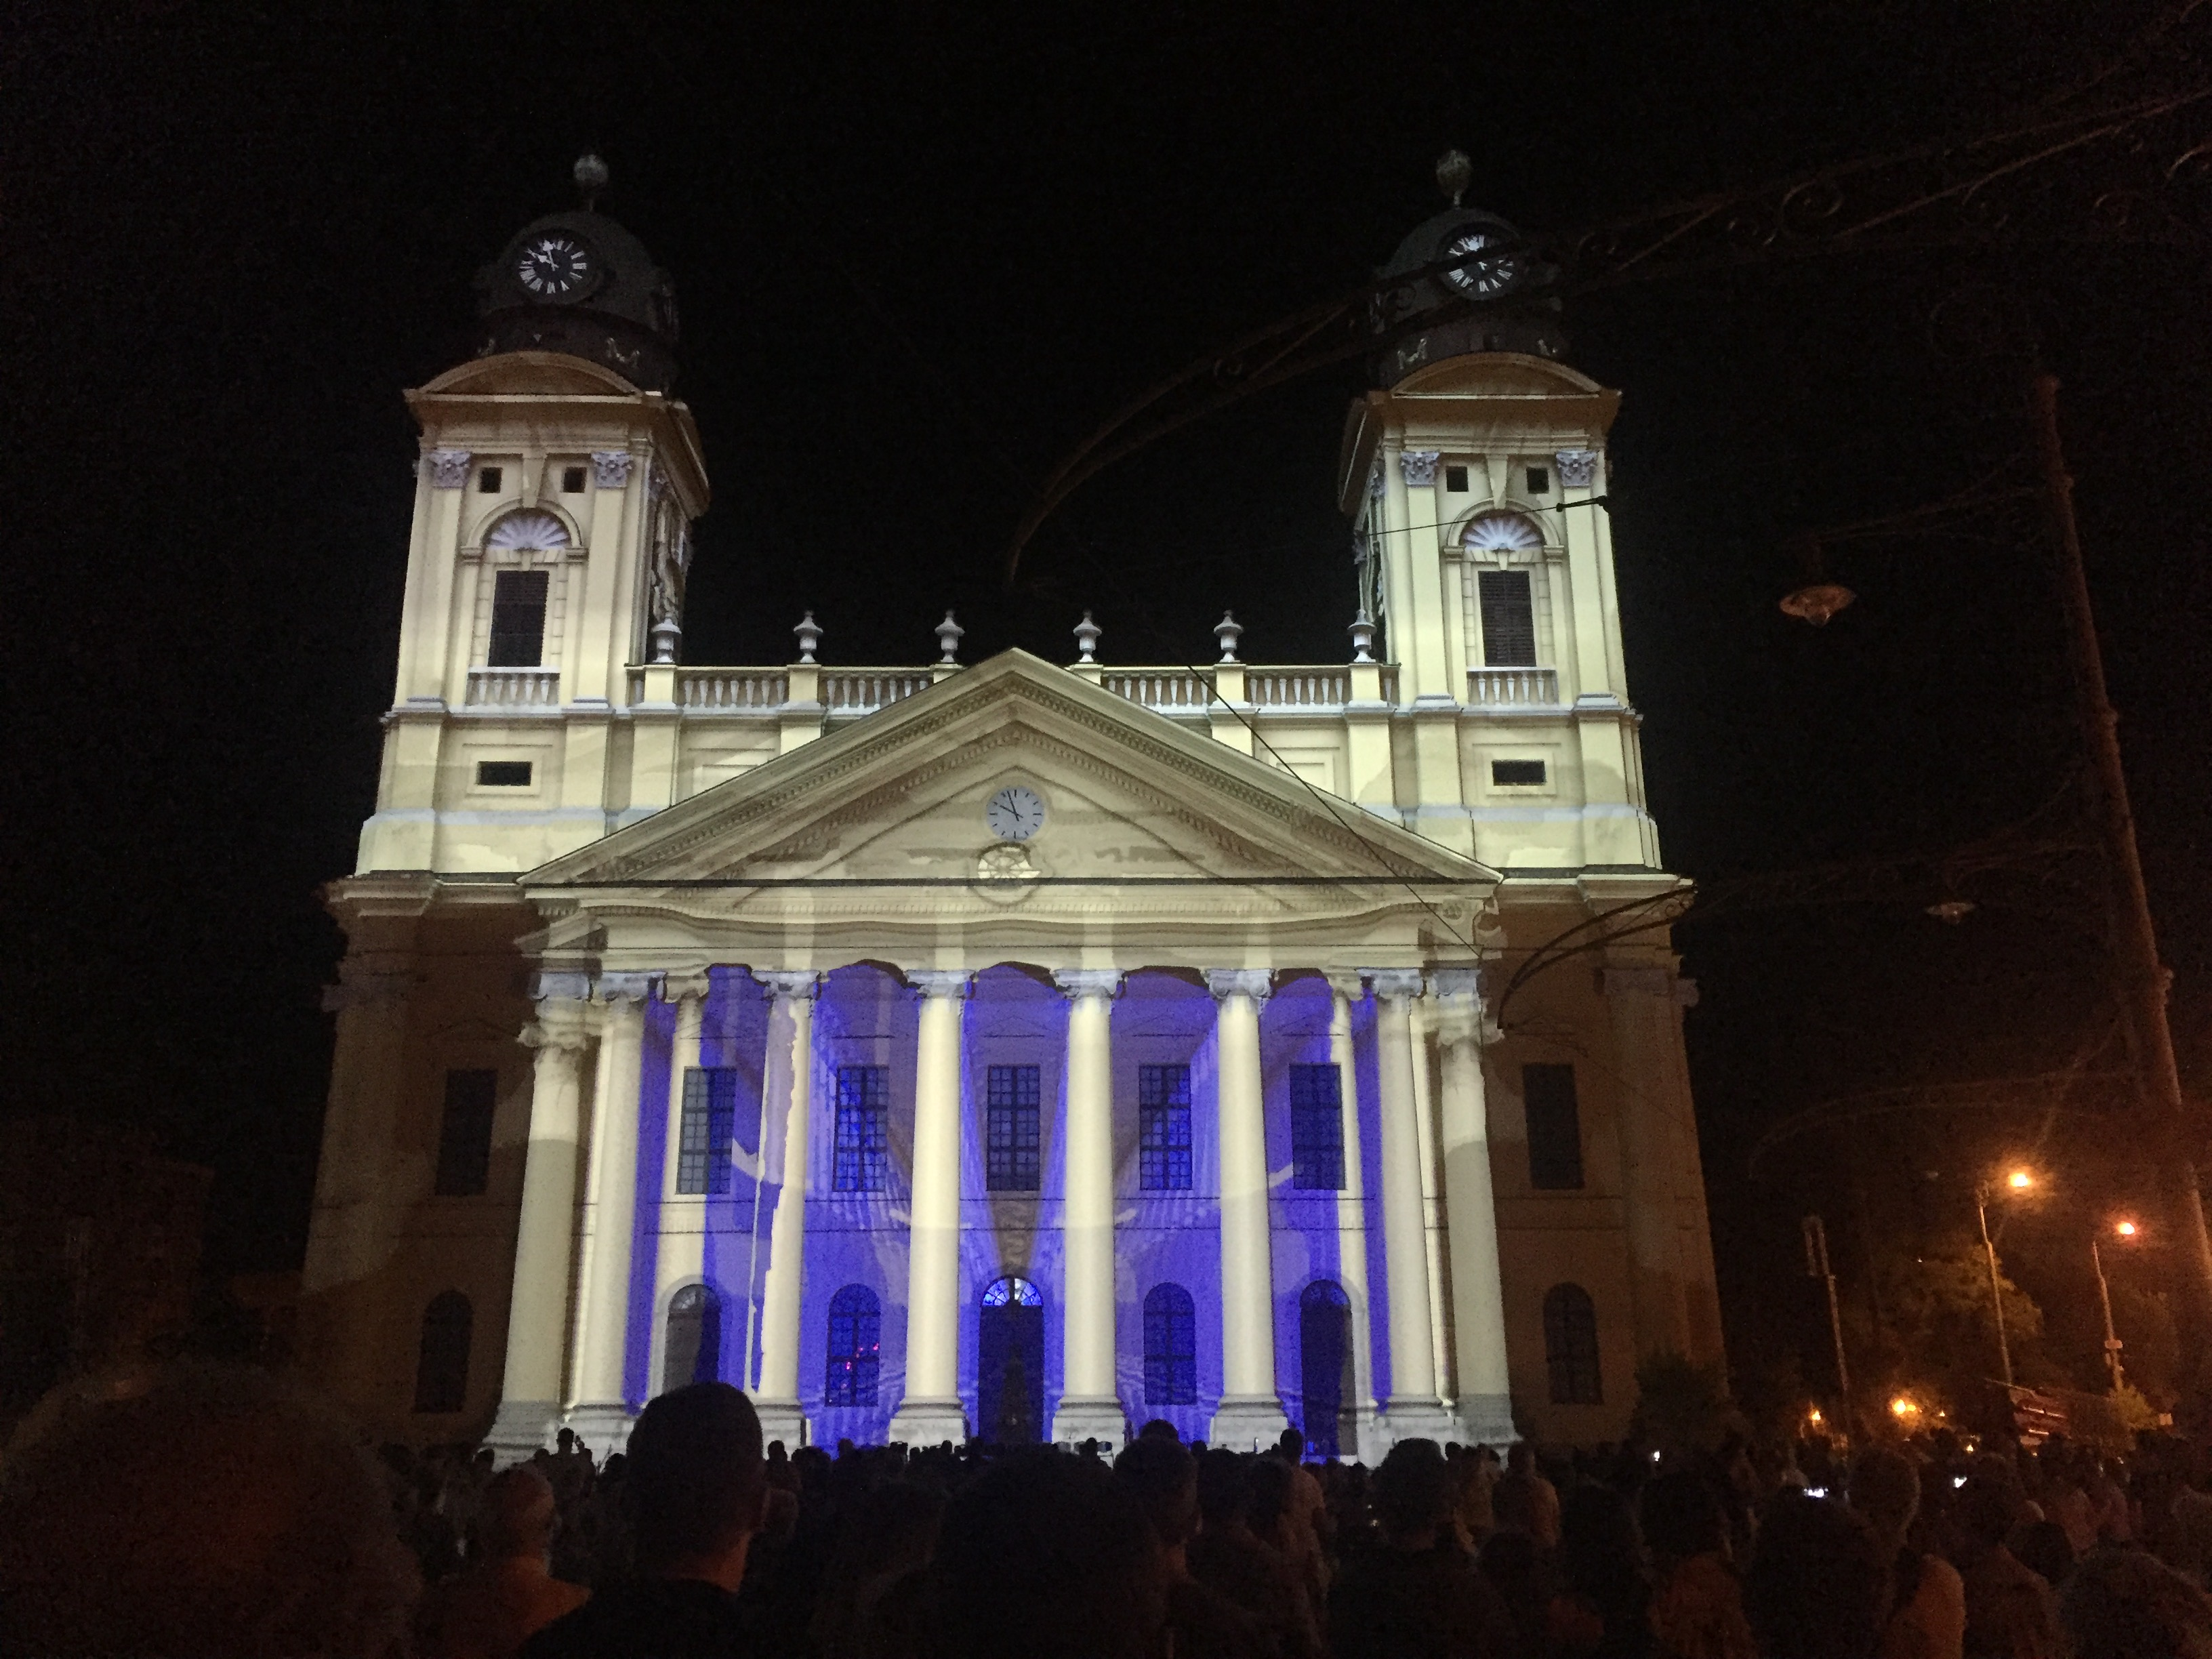 <h1>Videomapping on the Cathedral in Debrecen (Hungary)</h1>